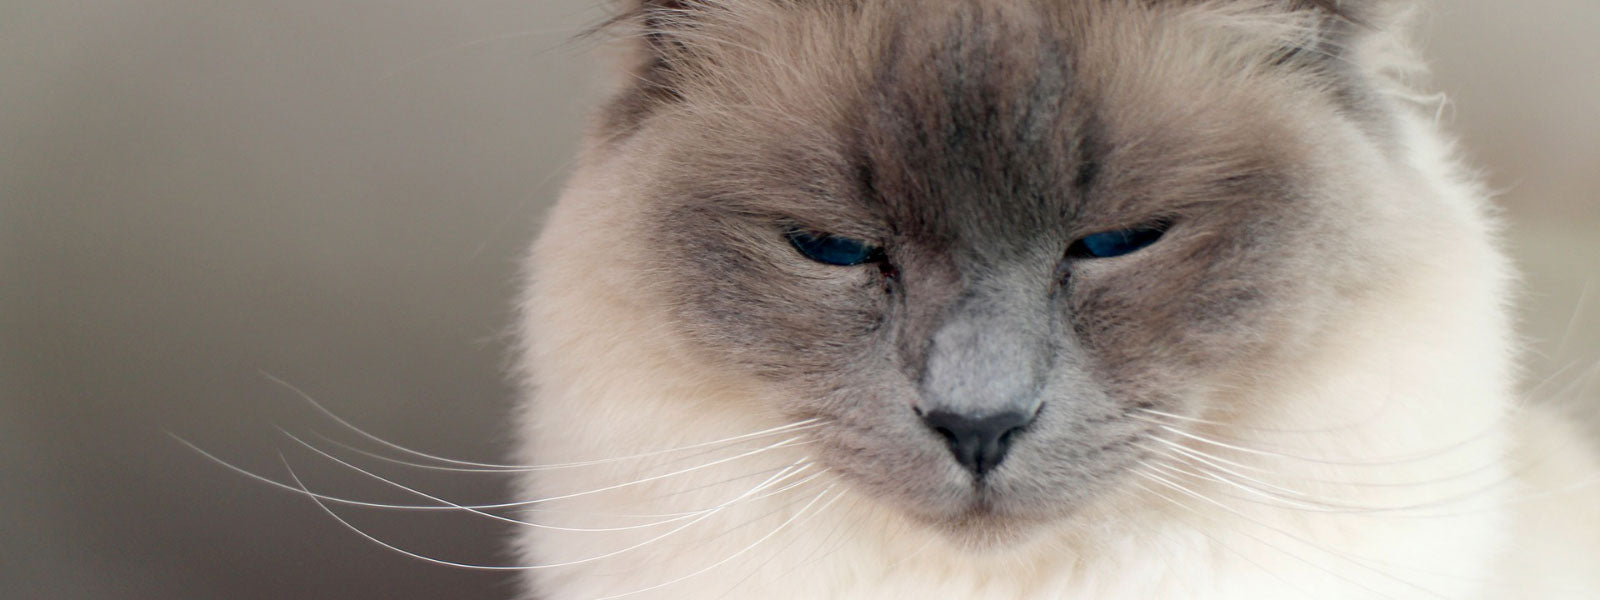 chat-birman-de-face